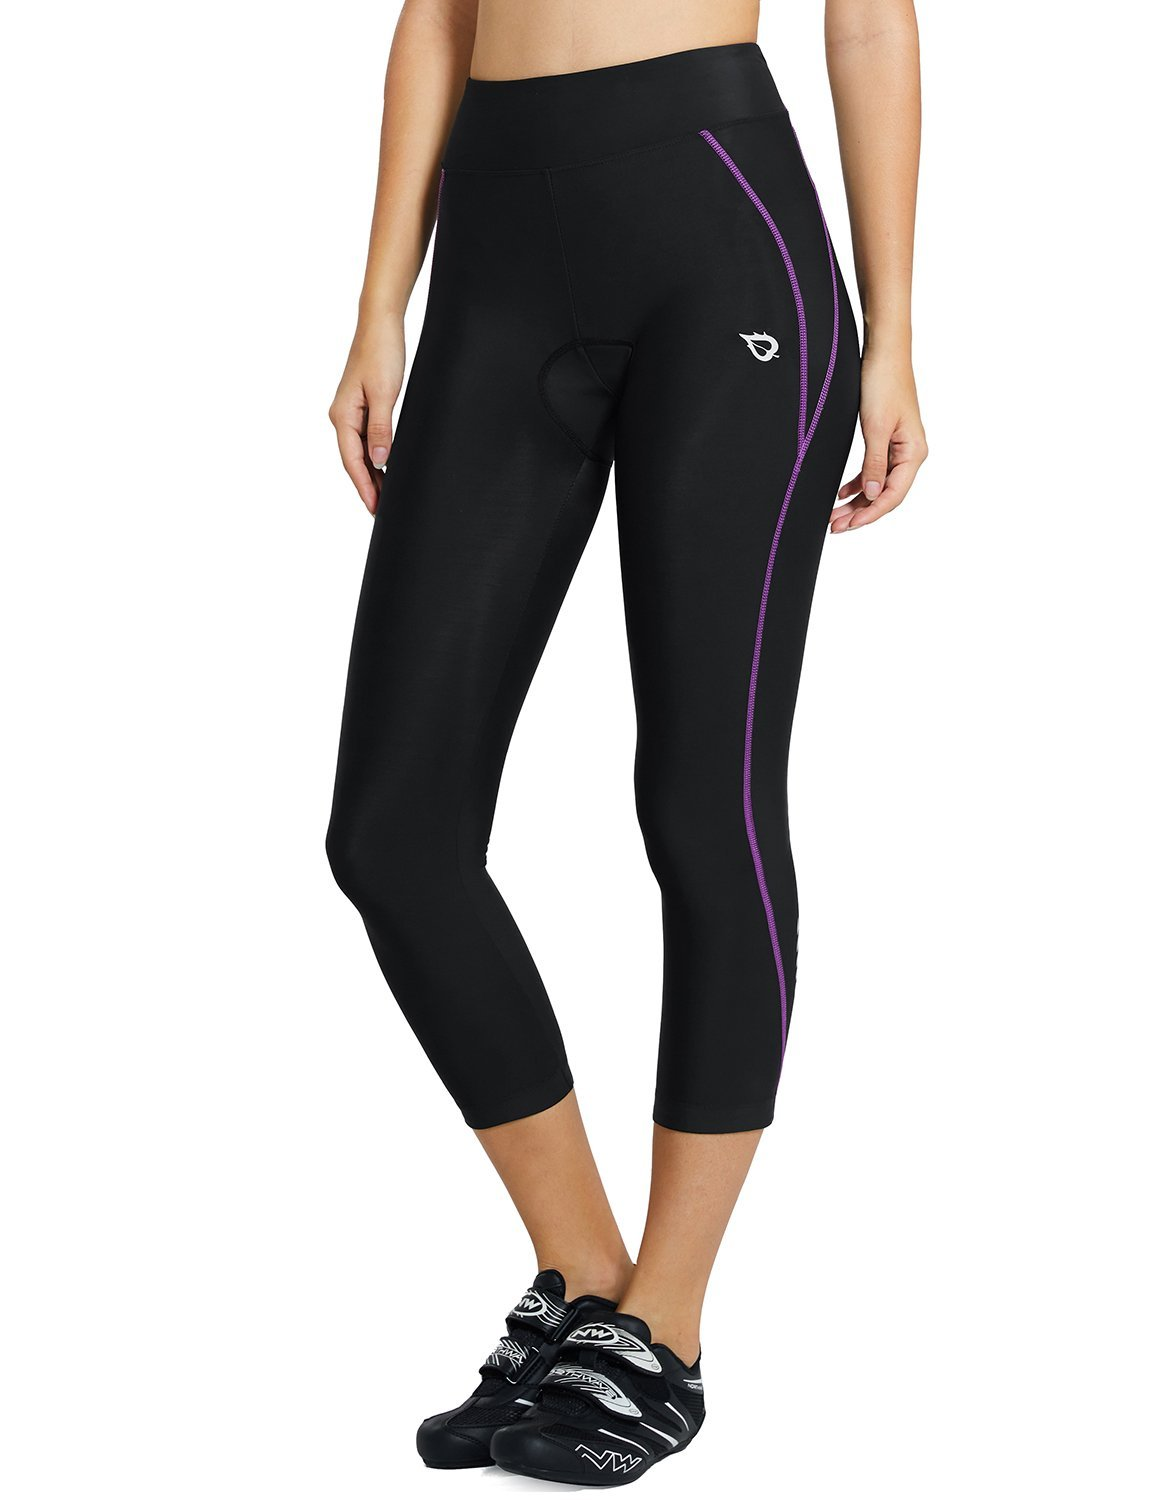 Baleaf Women's 3D Padded UPF 50+ 3/4 Cycling Pants Capris with Pocket Purple Line Size XXL by Baleaf